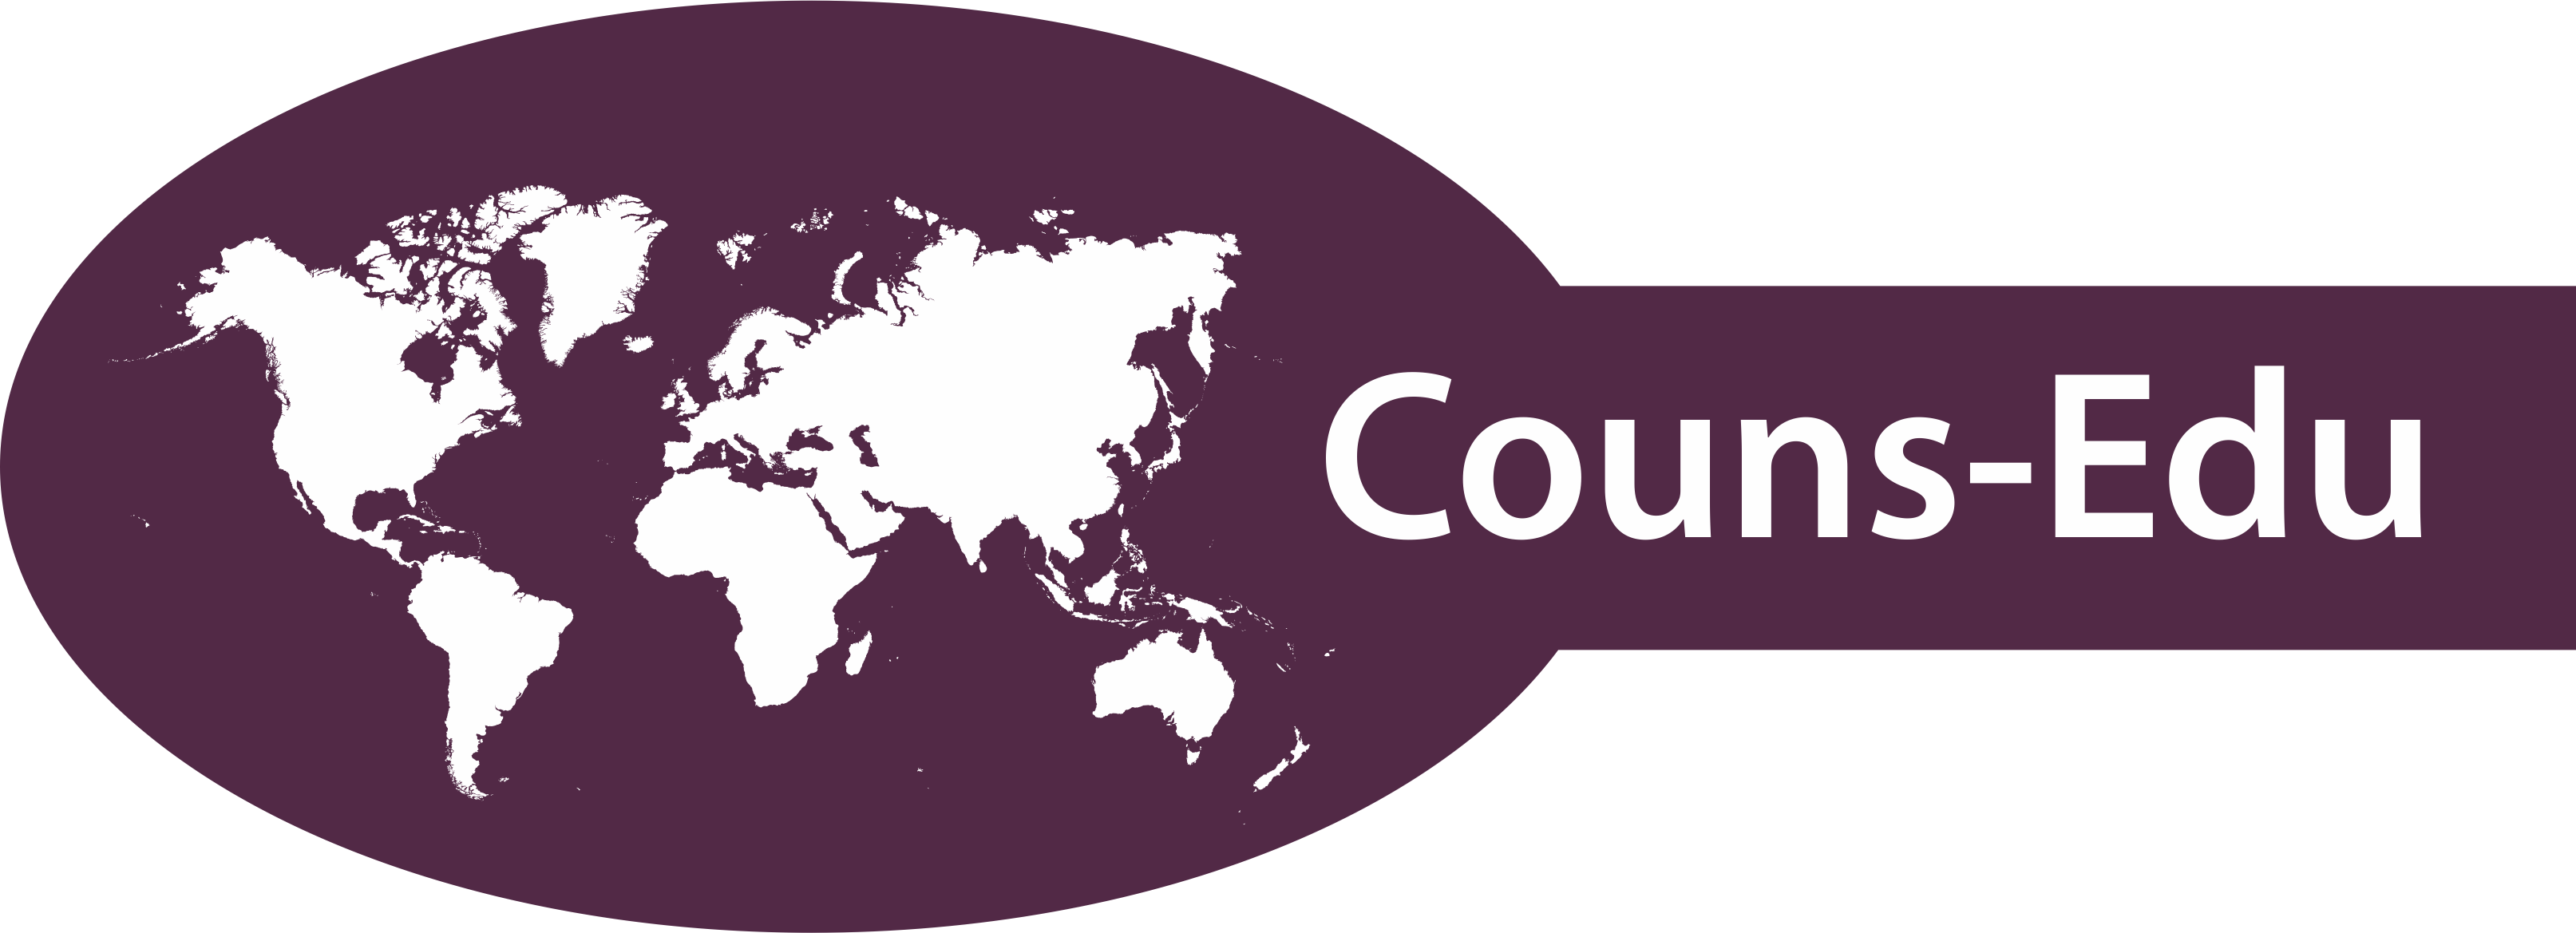 COUNS-EDU: The International Journal of Counseling and Education